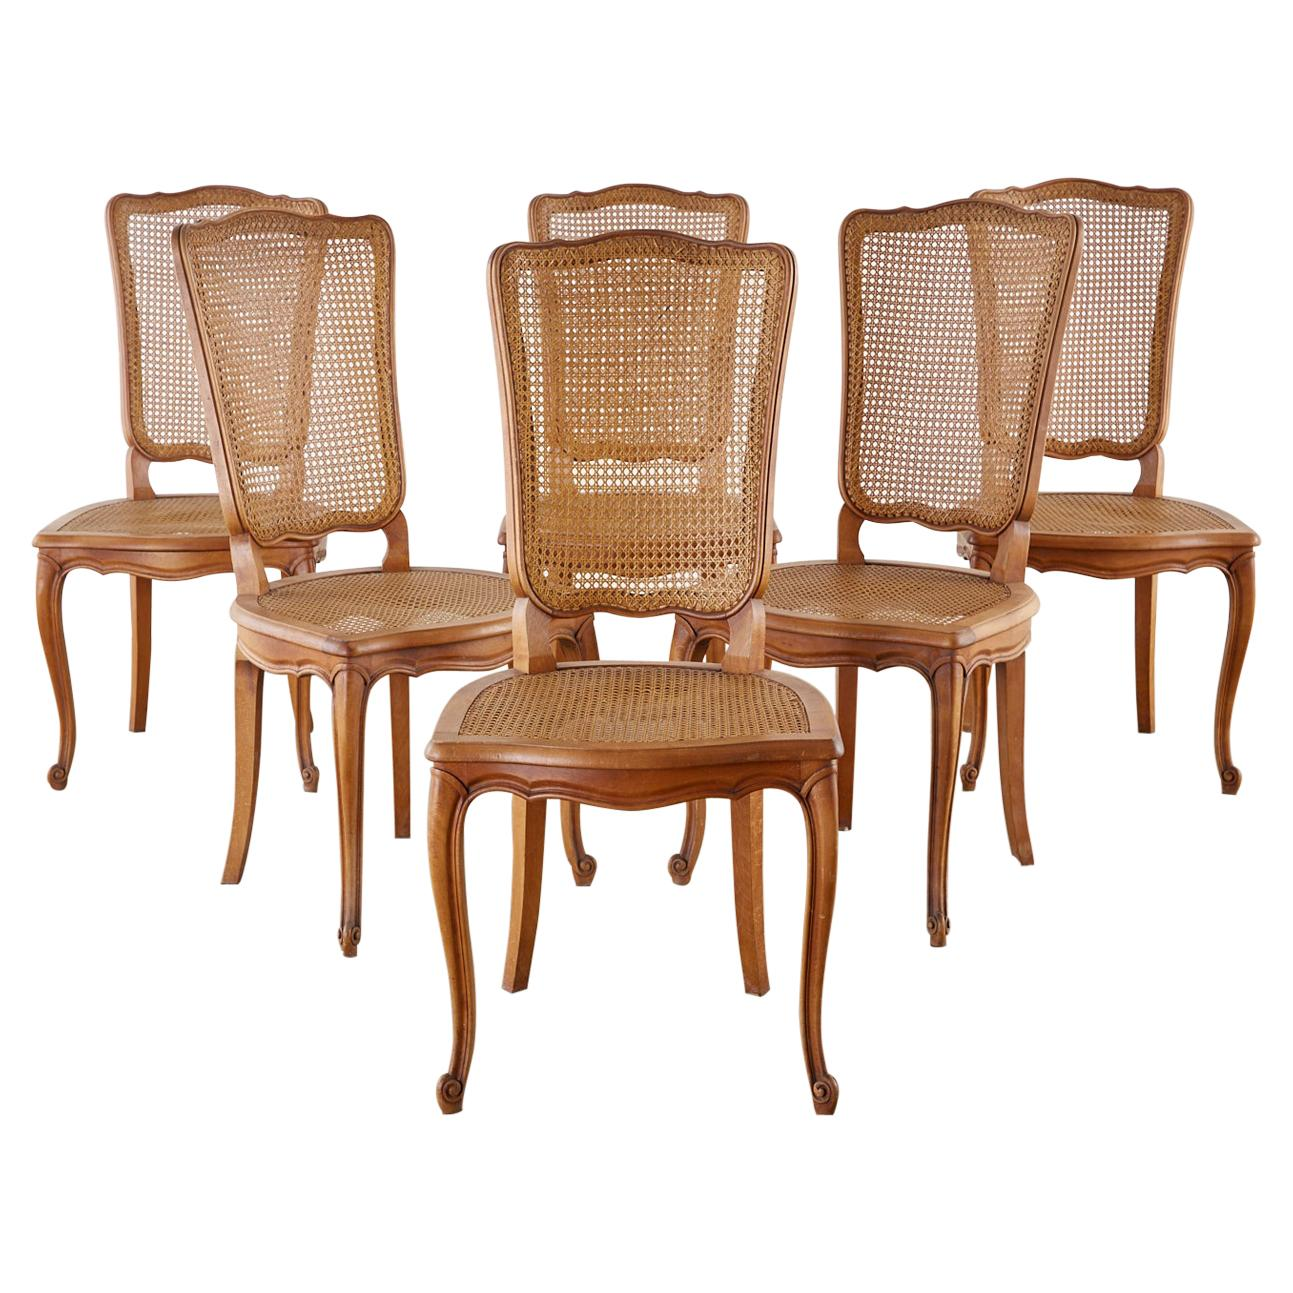 Set of Six French Provincial Caned Mahogany Dining Chairs